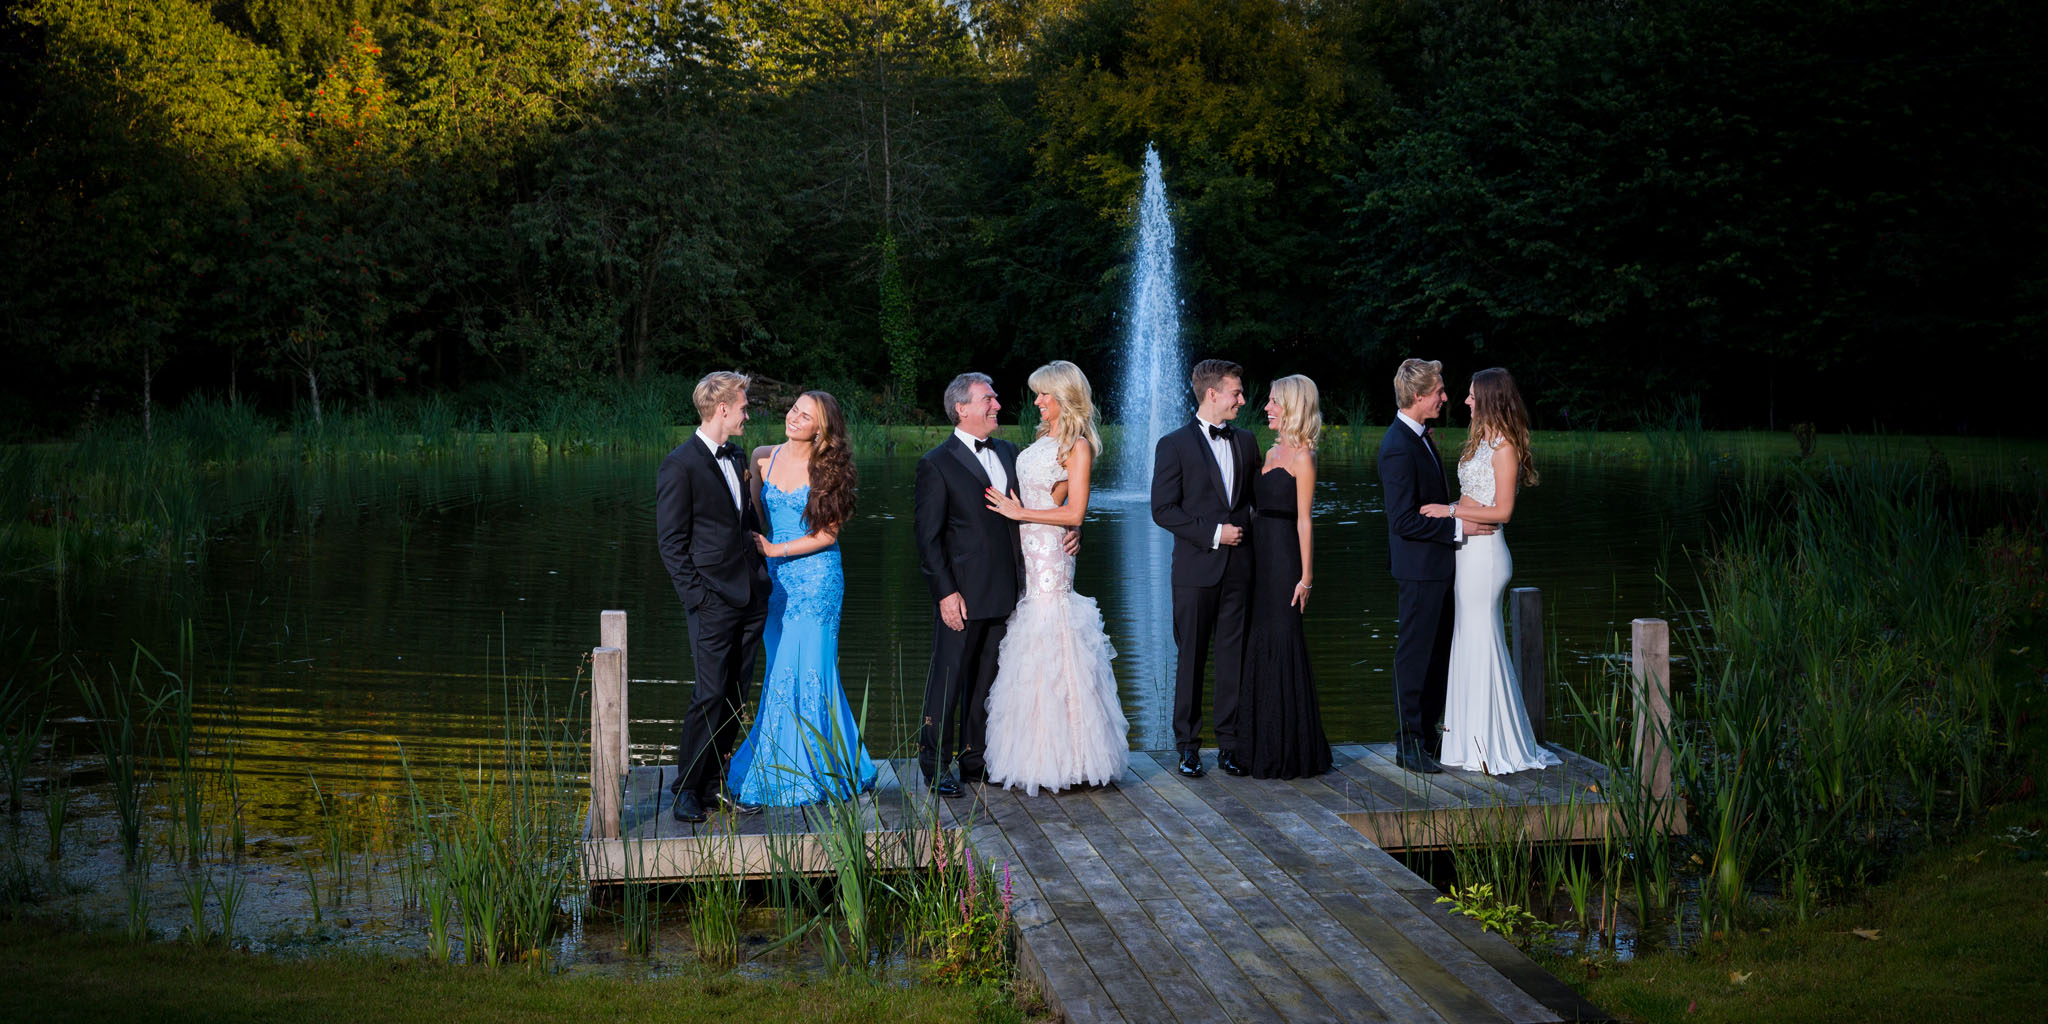 A formal family portrait photograph to mark a 50th birthday in Cheshire